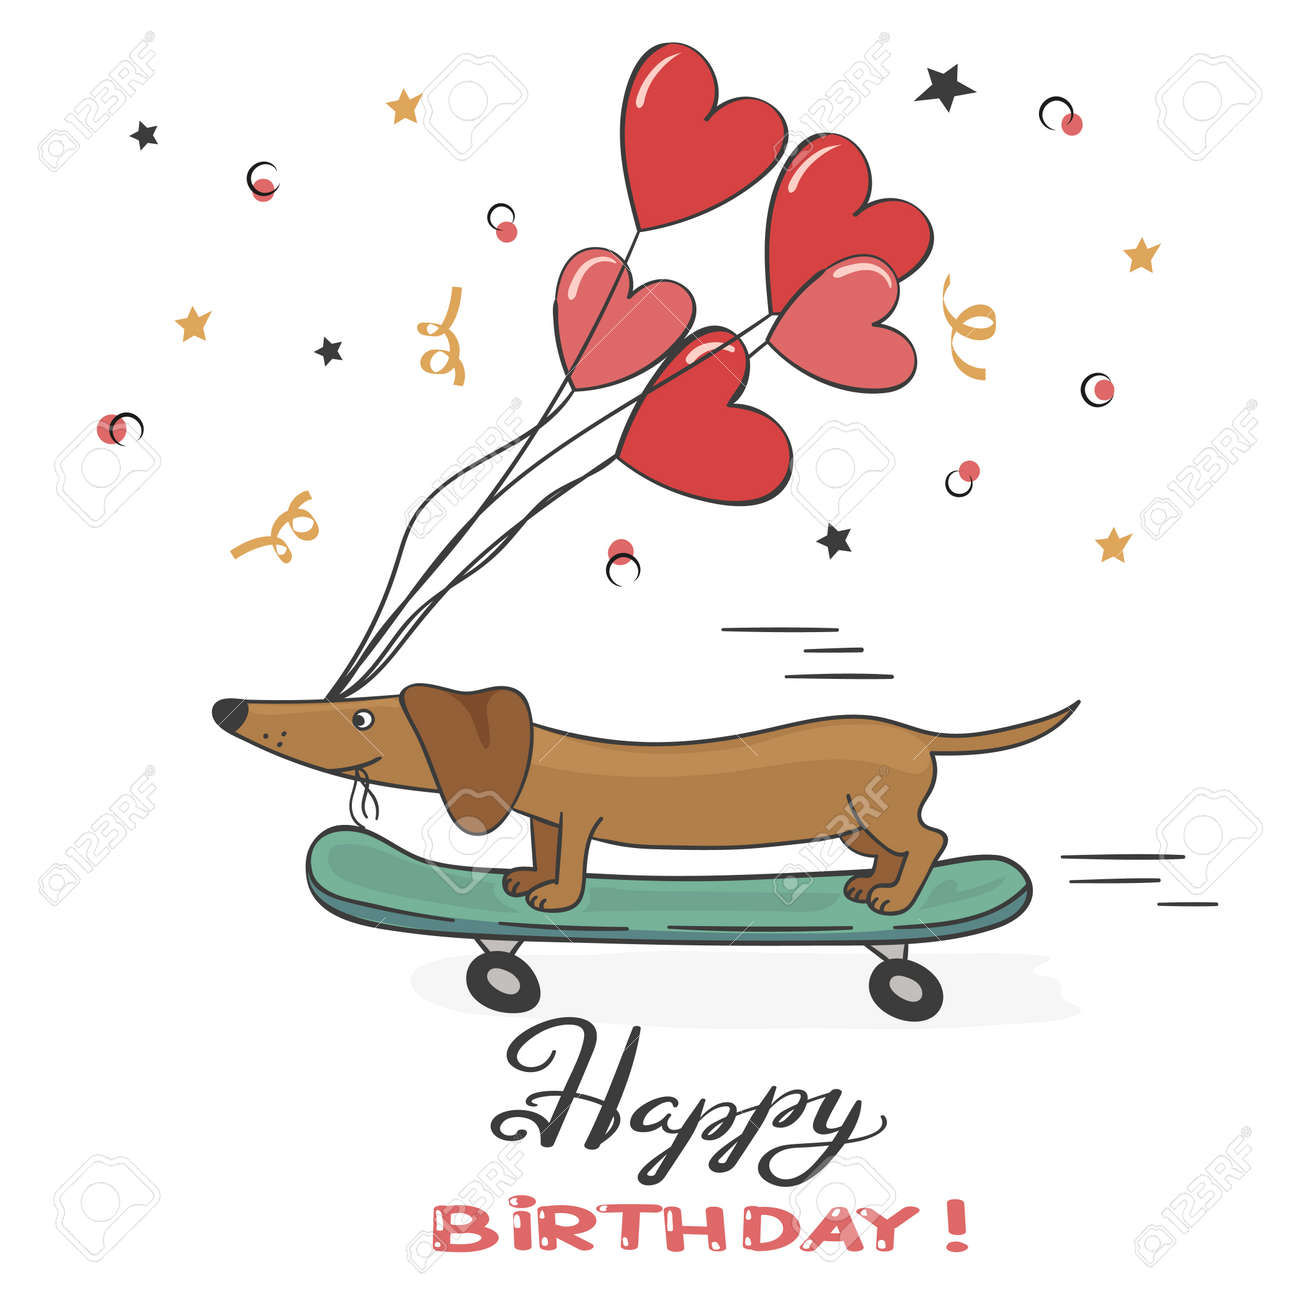 Greeting Card With Cute Dachshund Dog And Balloons Happy Birthday